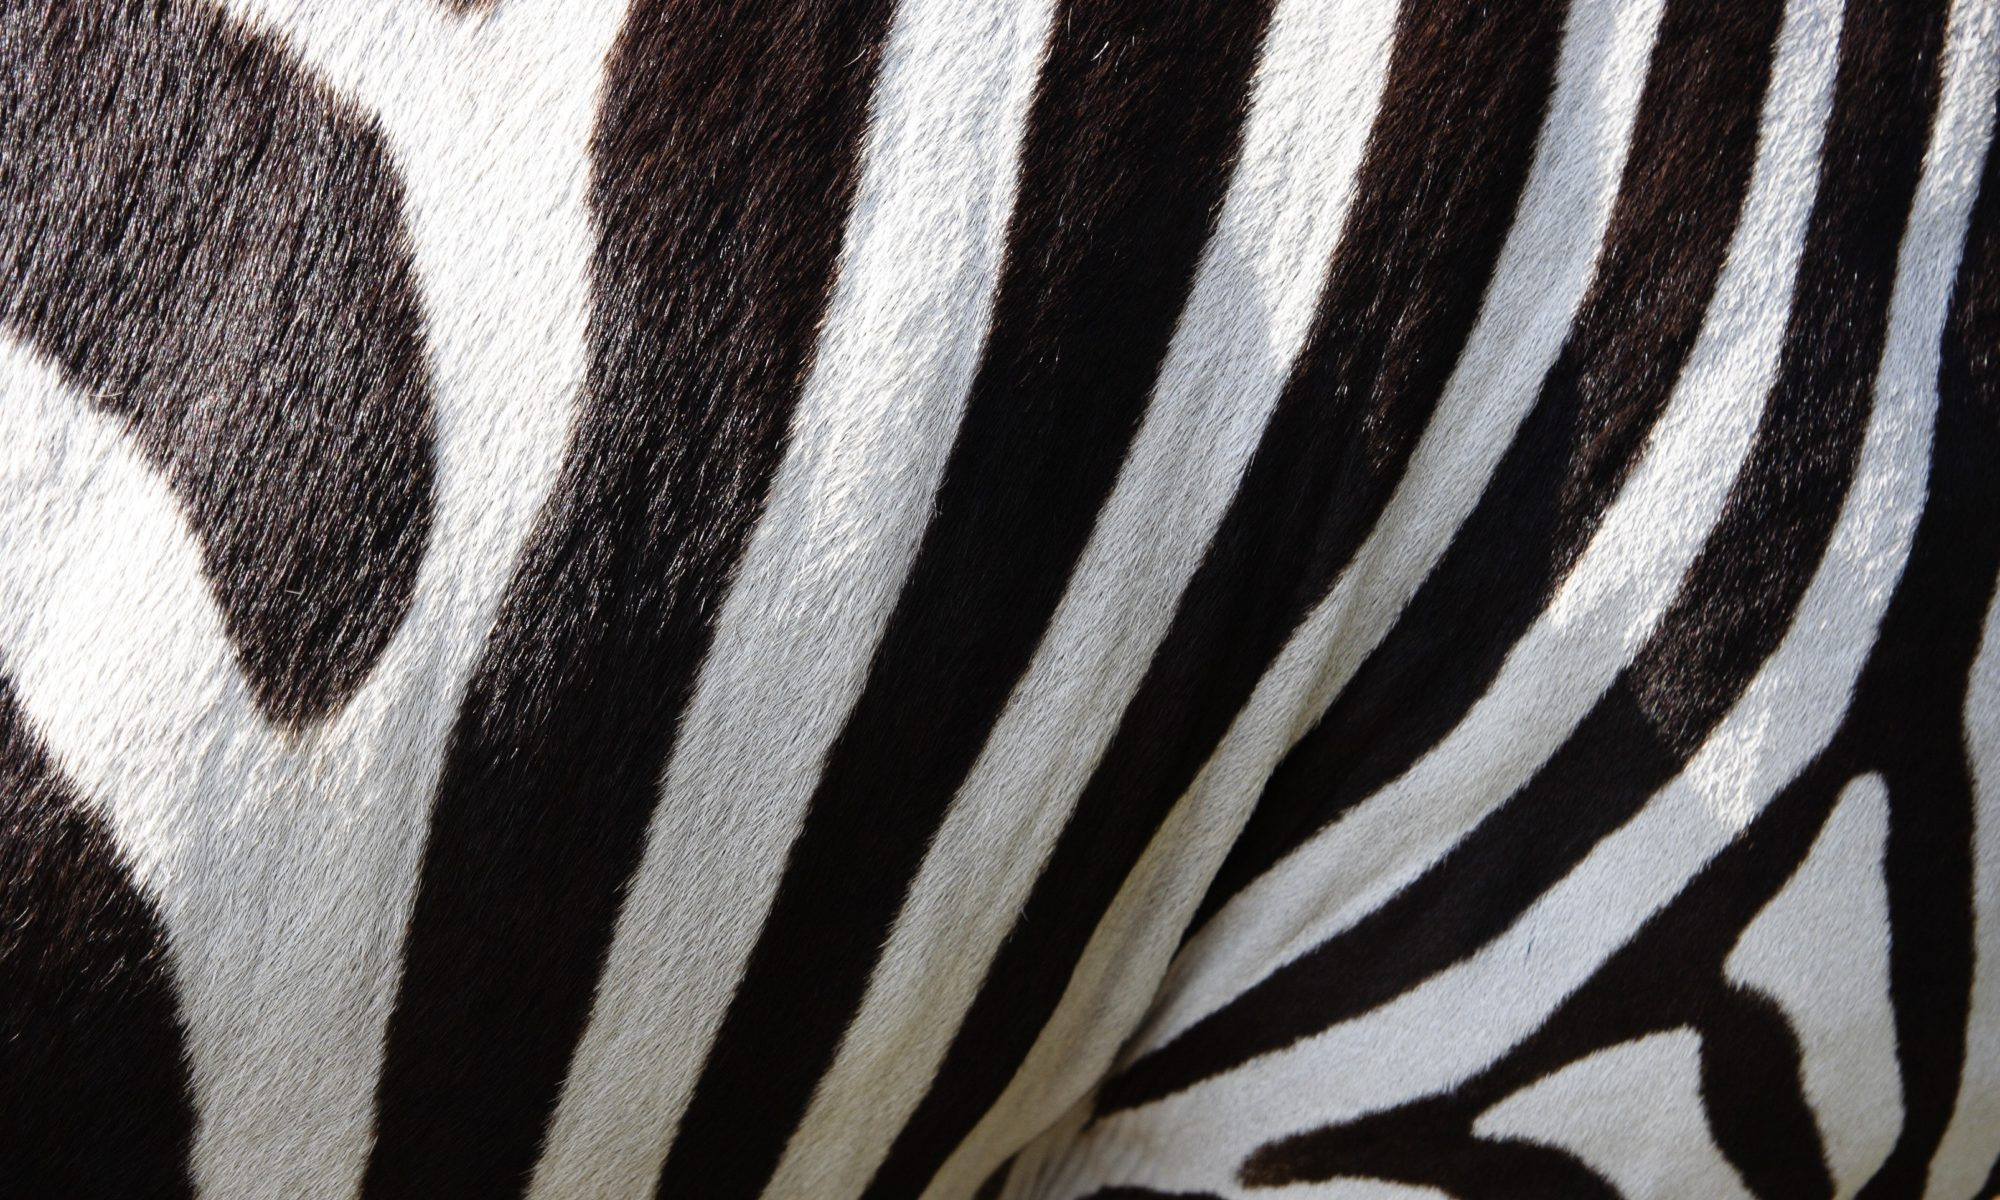 Fat Zebra Theory